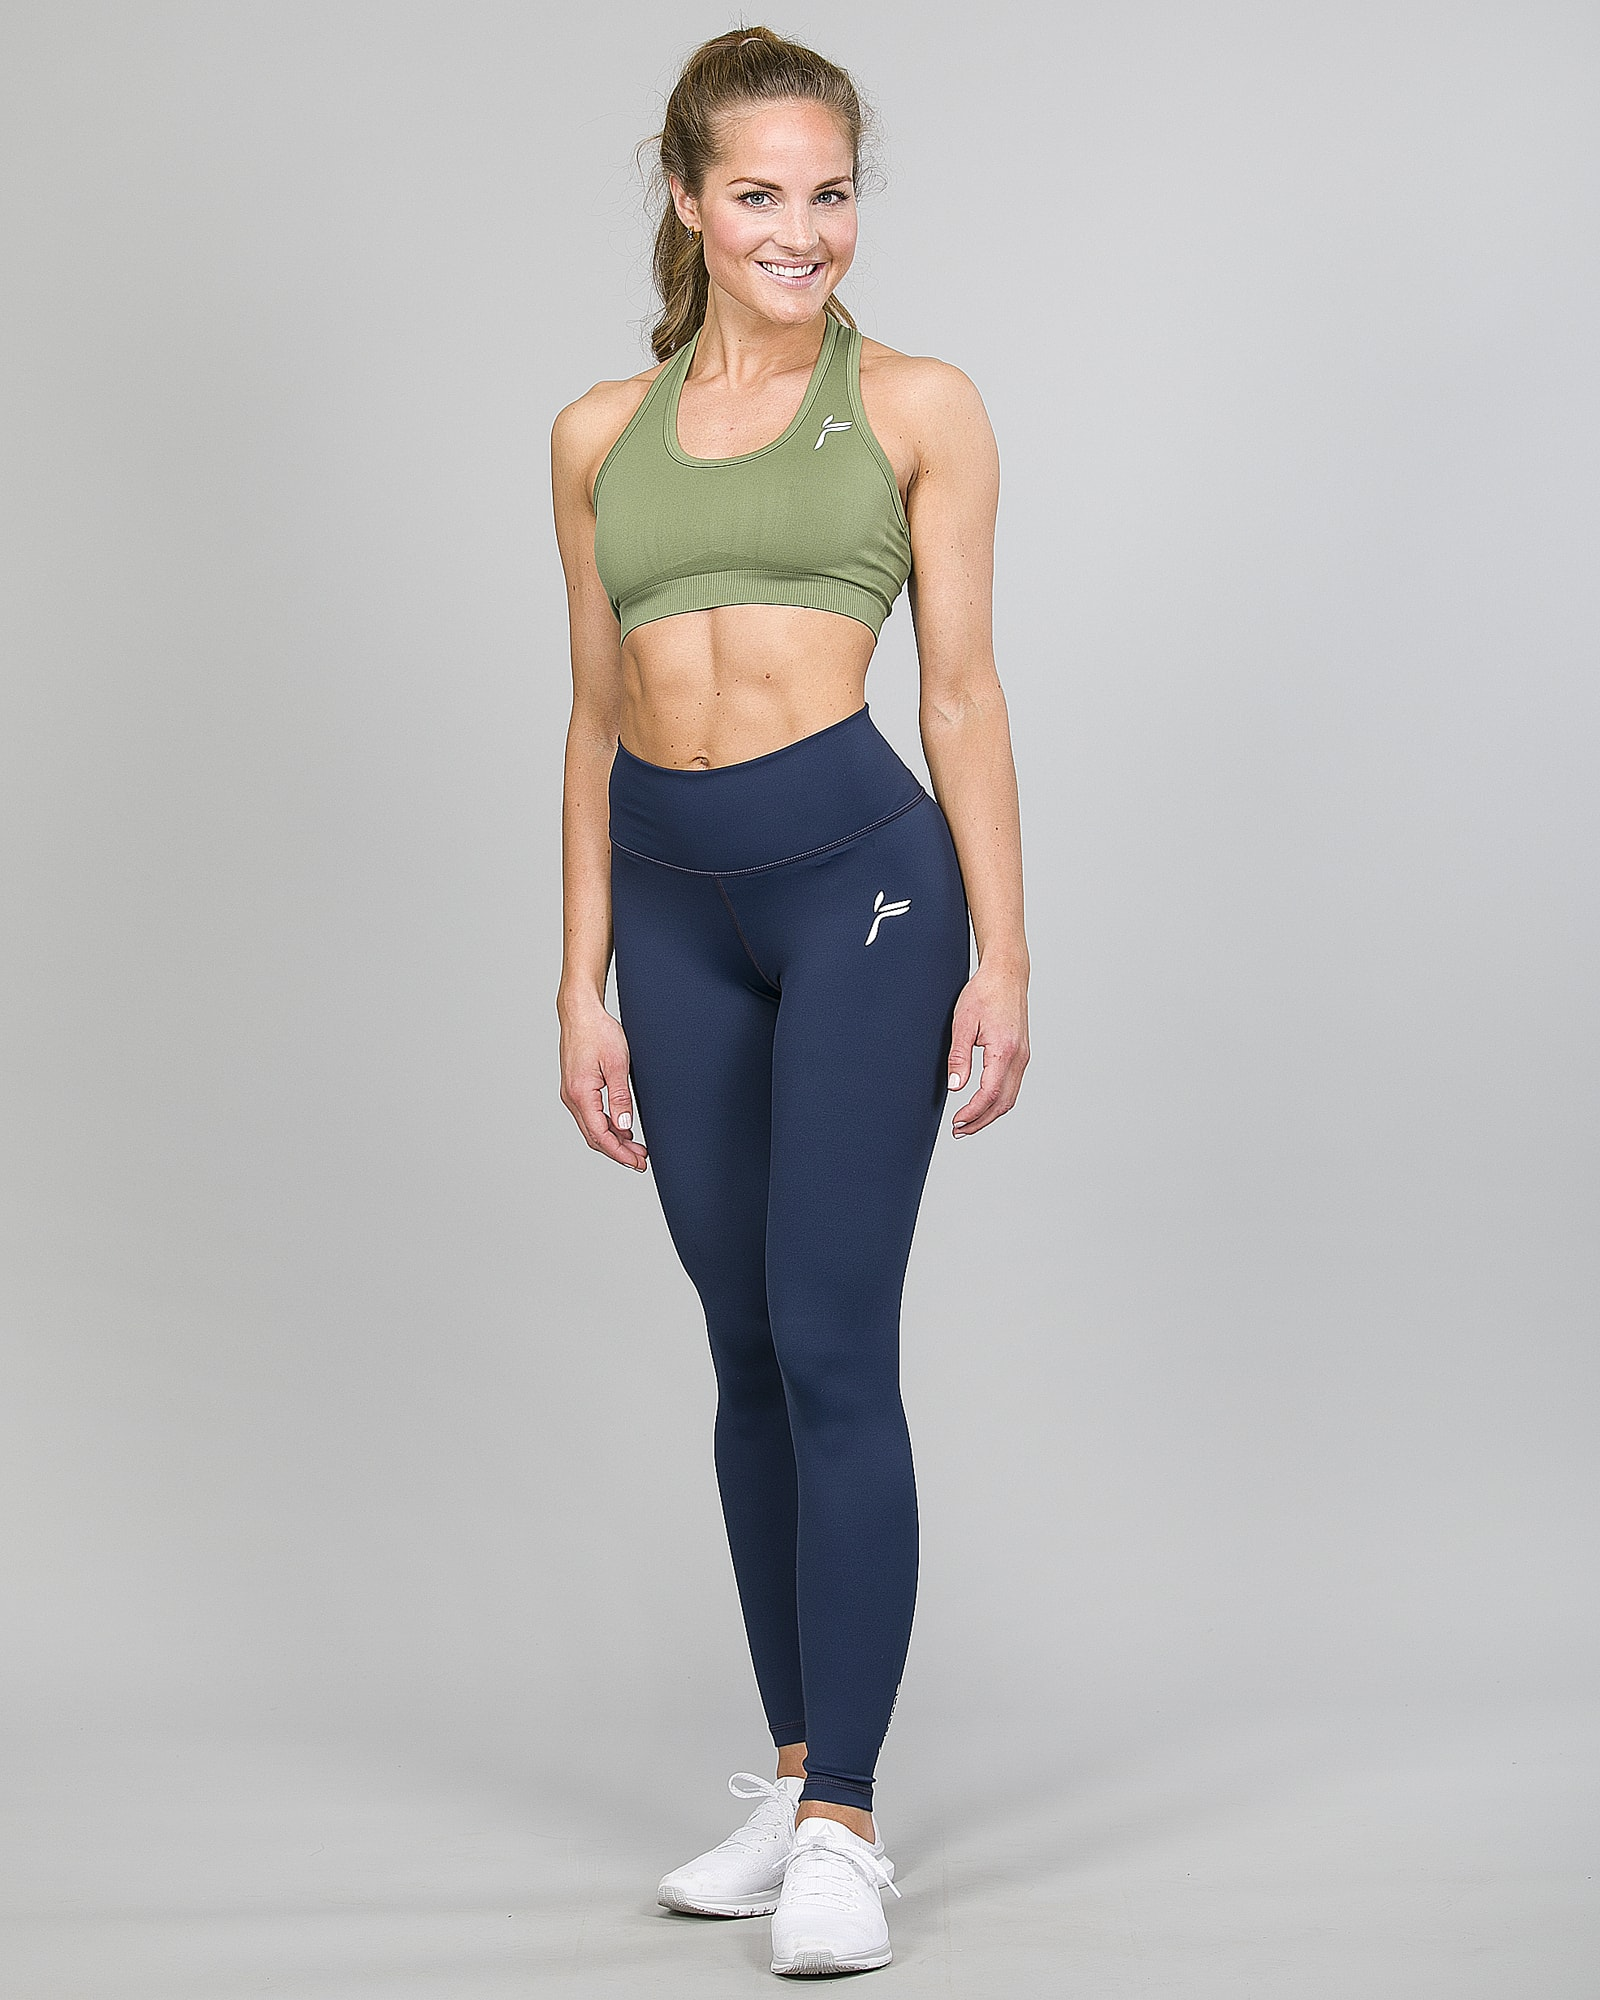 Famme Essential High Waist Legging - Midnight Blue ehwt-mb and Drop It Sports Bra Army Green vhwl-ag d